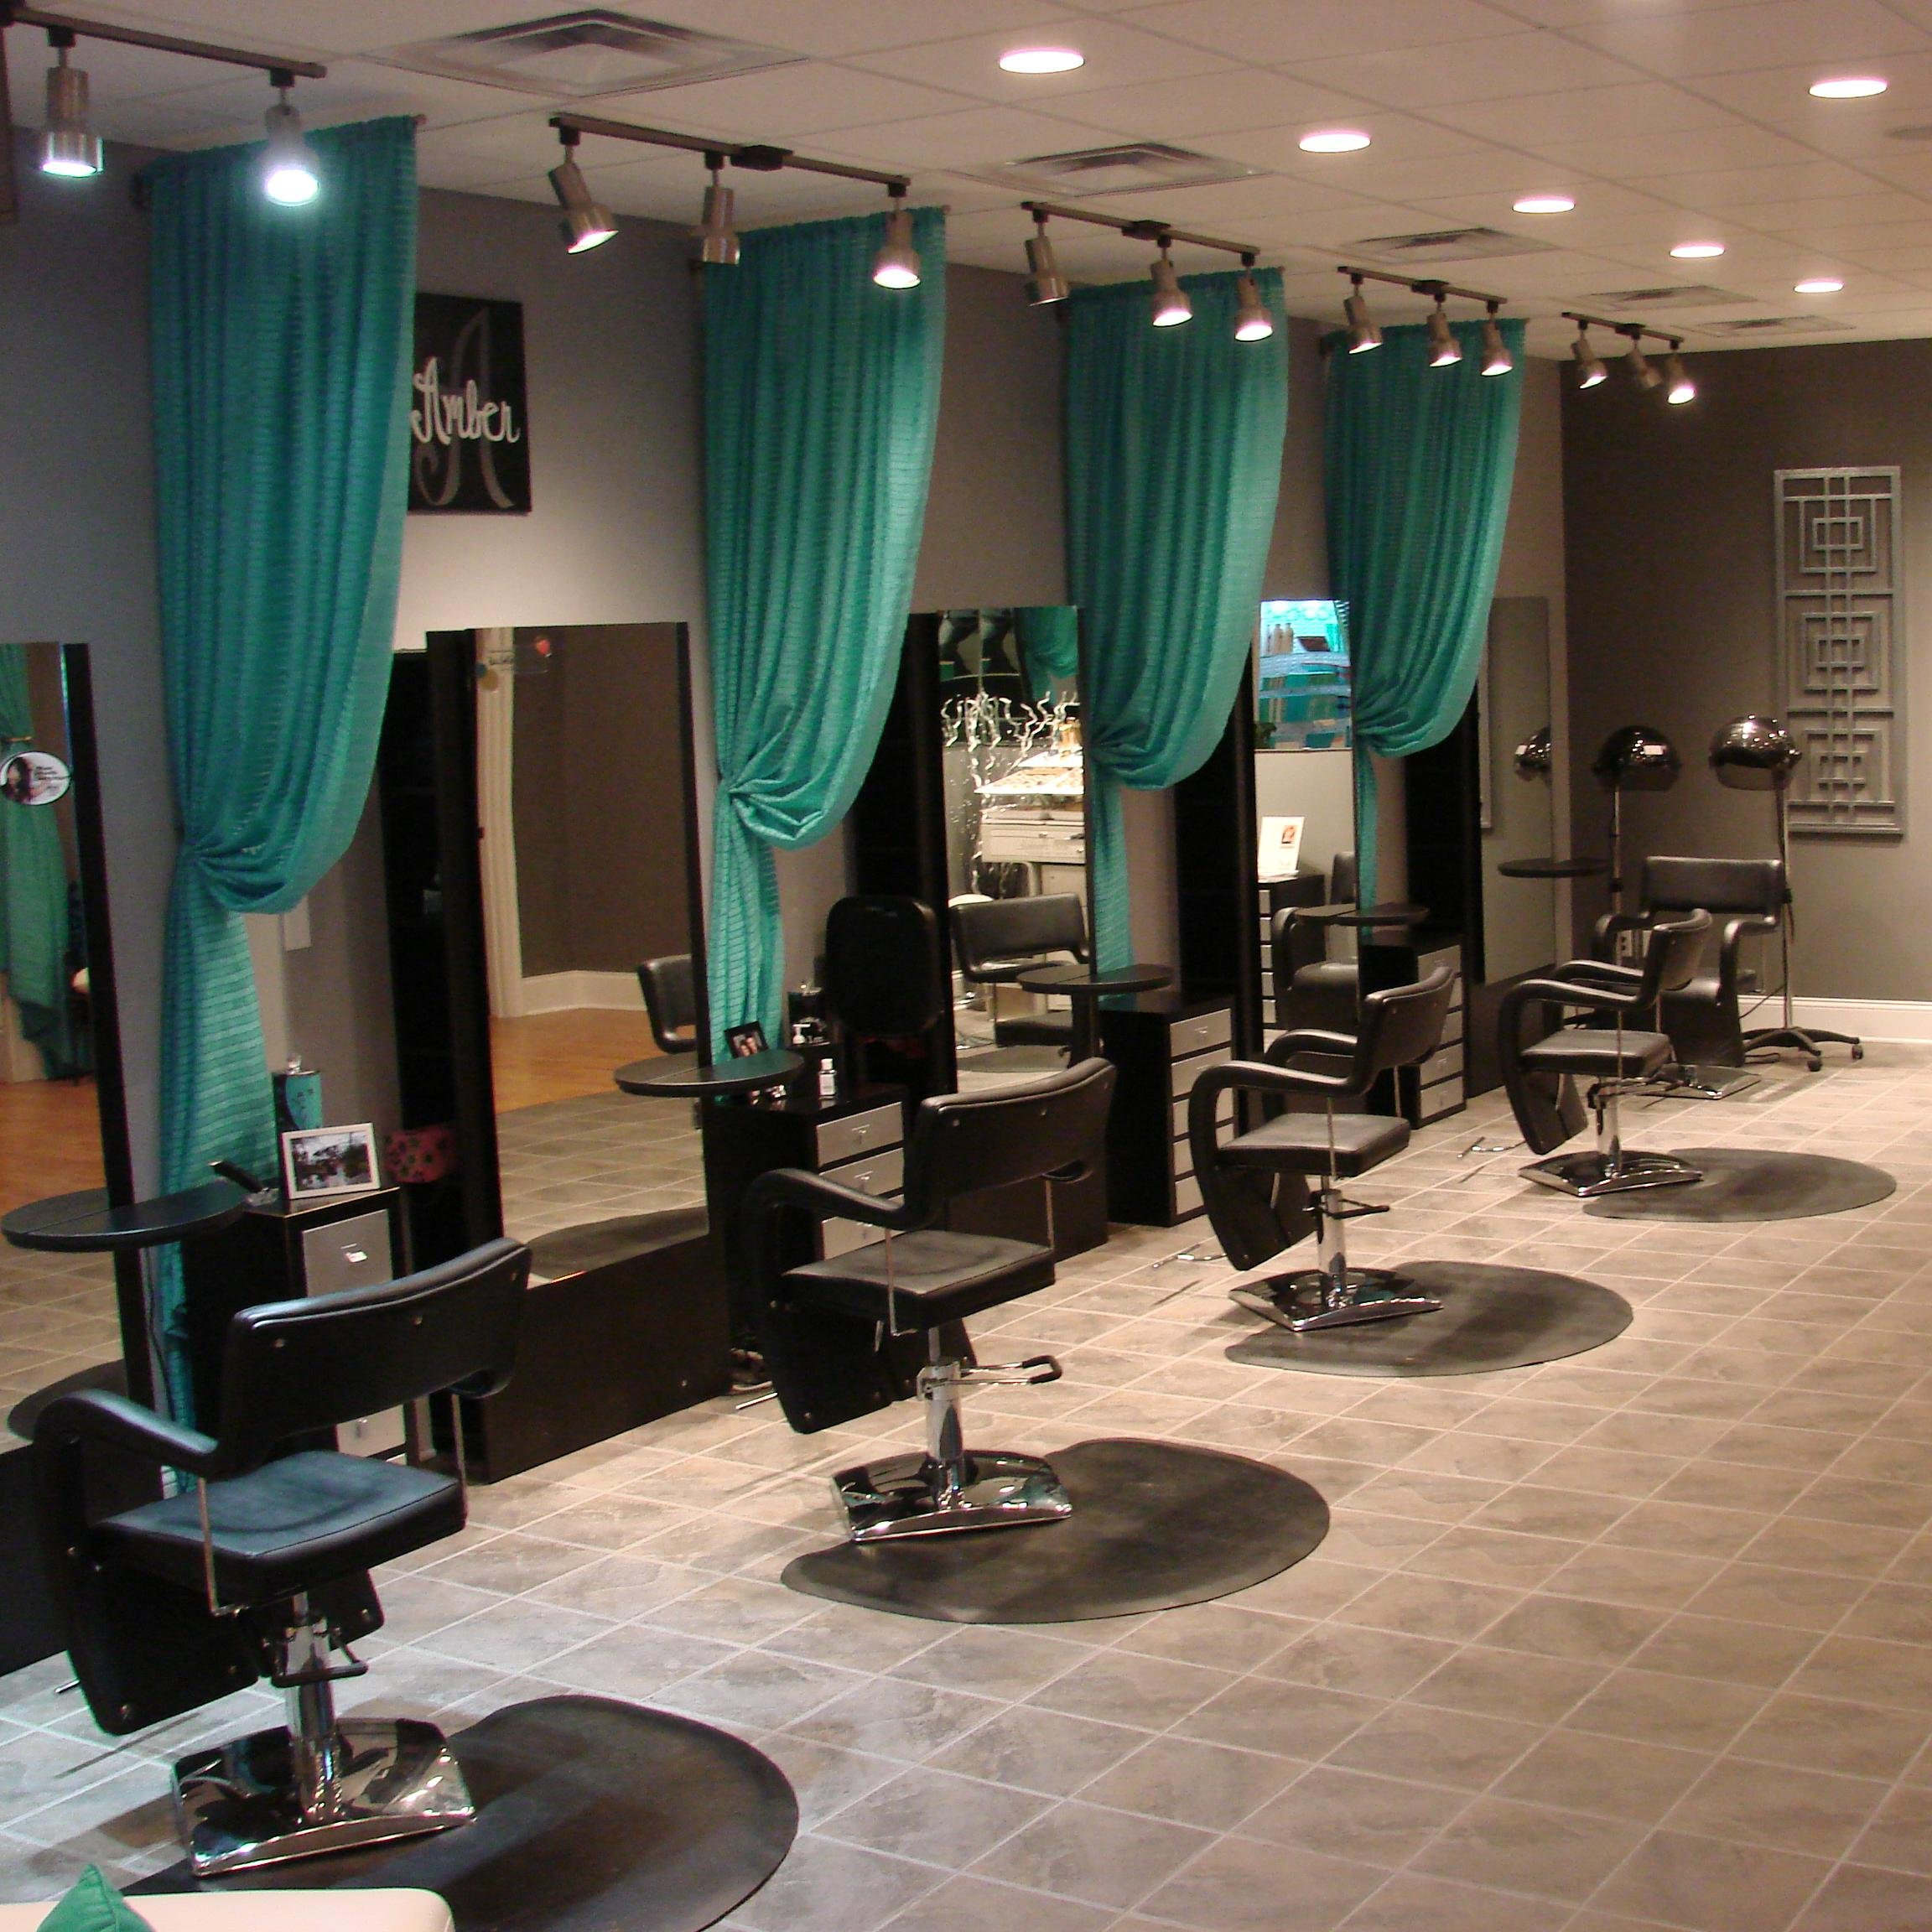 Full service hair salon by dyked featuring sarah banks sabina rouge - 1 6